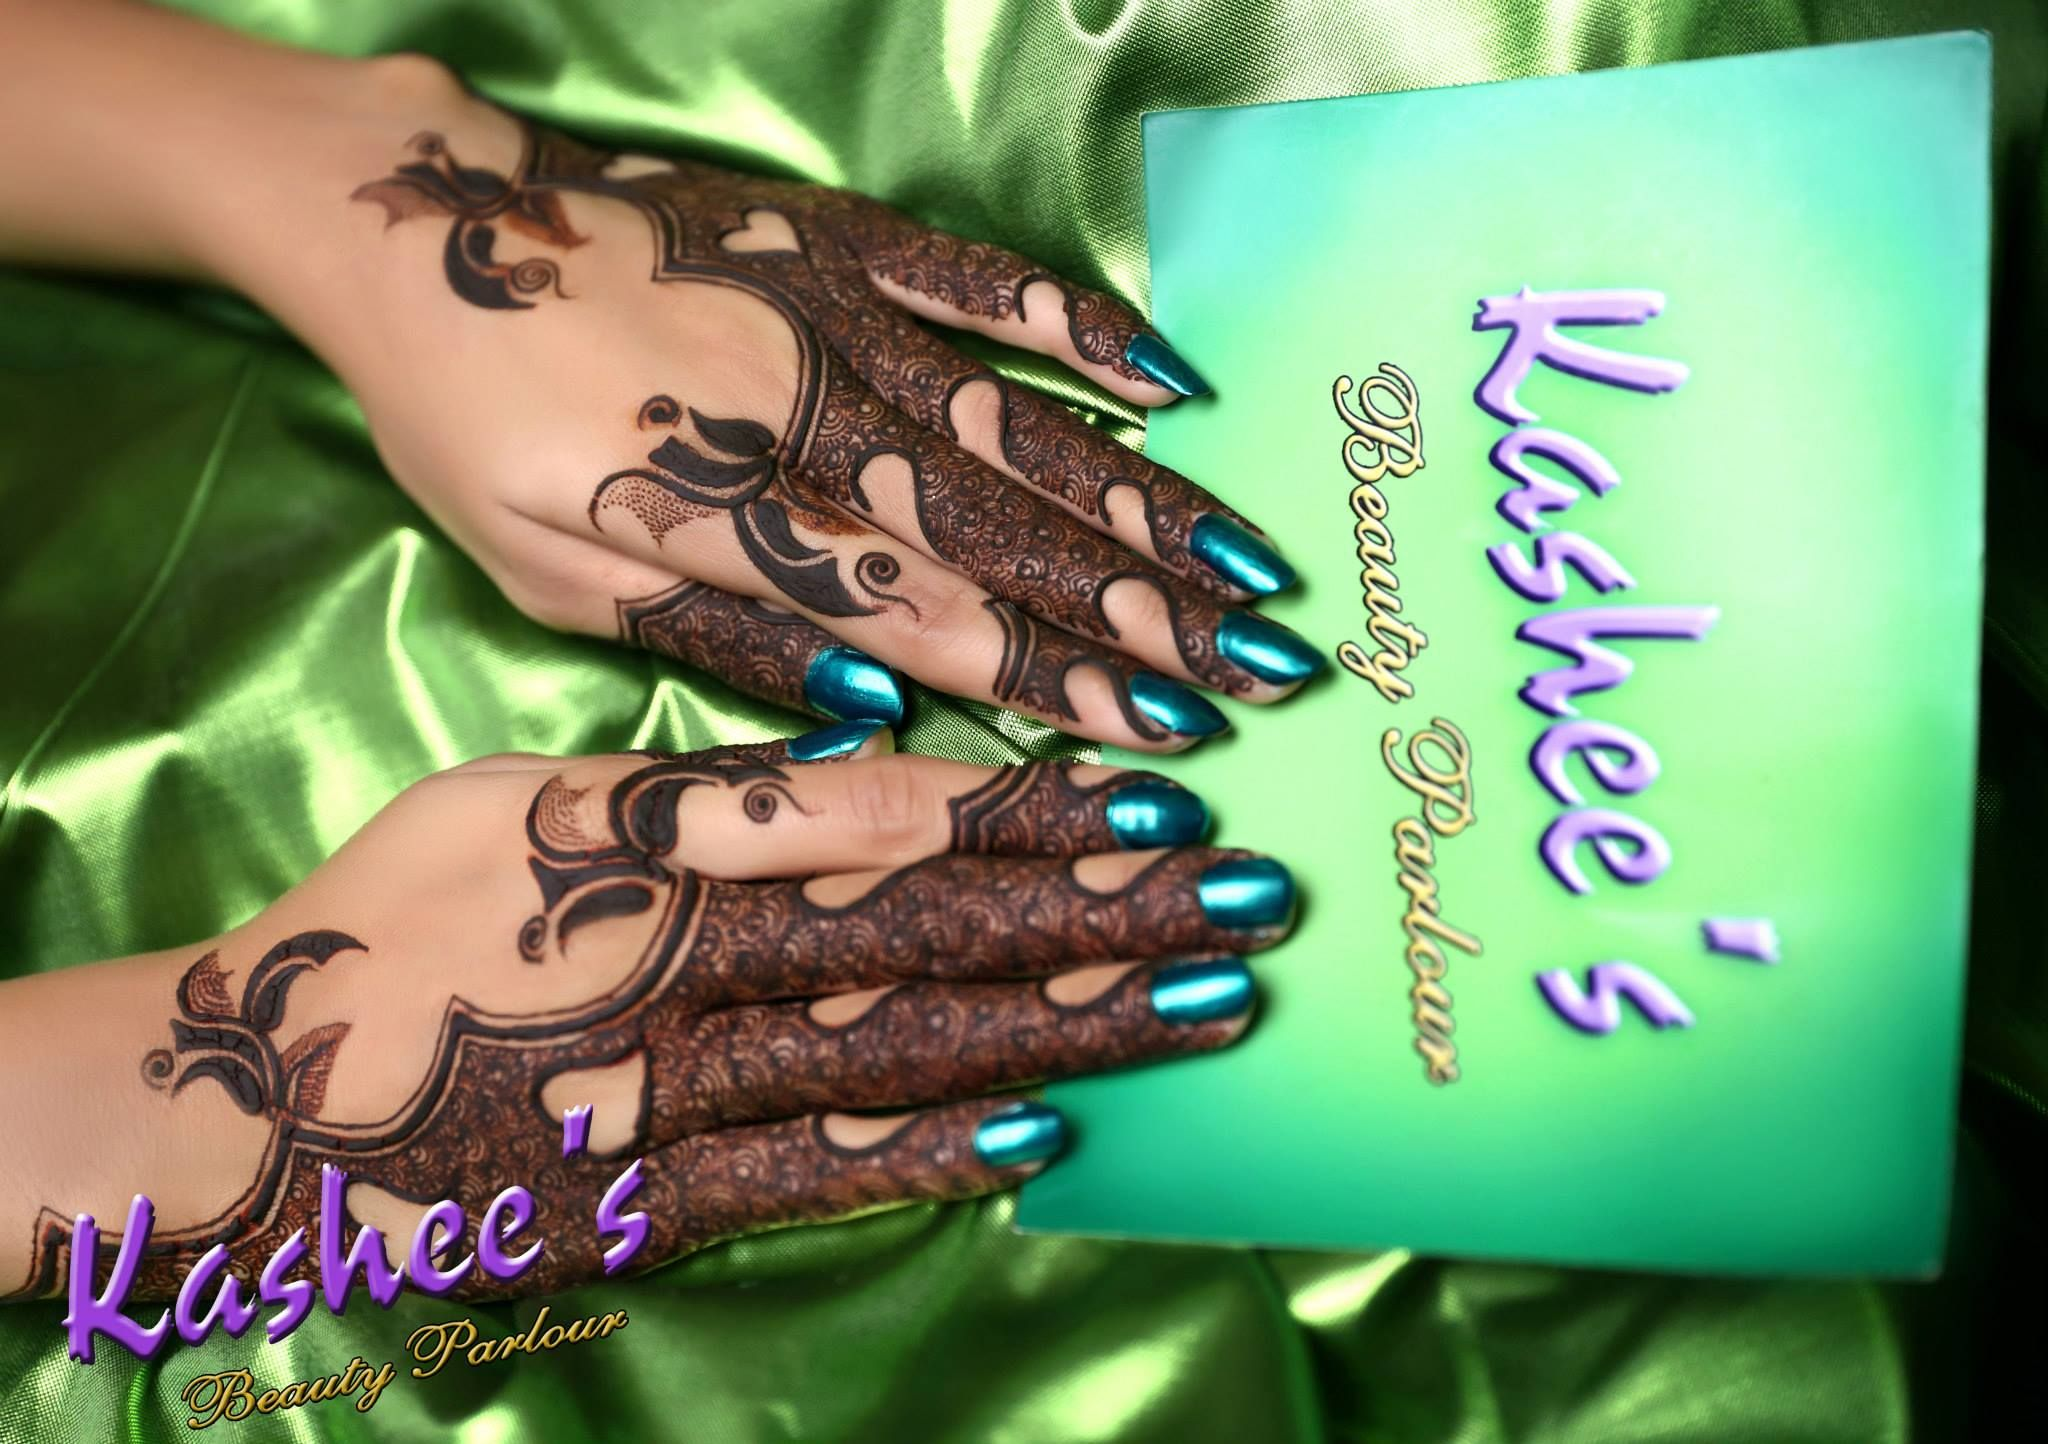 Stylish Mehndi Designs Collection 2020 2021 By Kashee Artist Salon Mehndi Designs Stylish Mehndi Kashees Mehndi